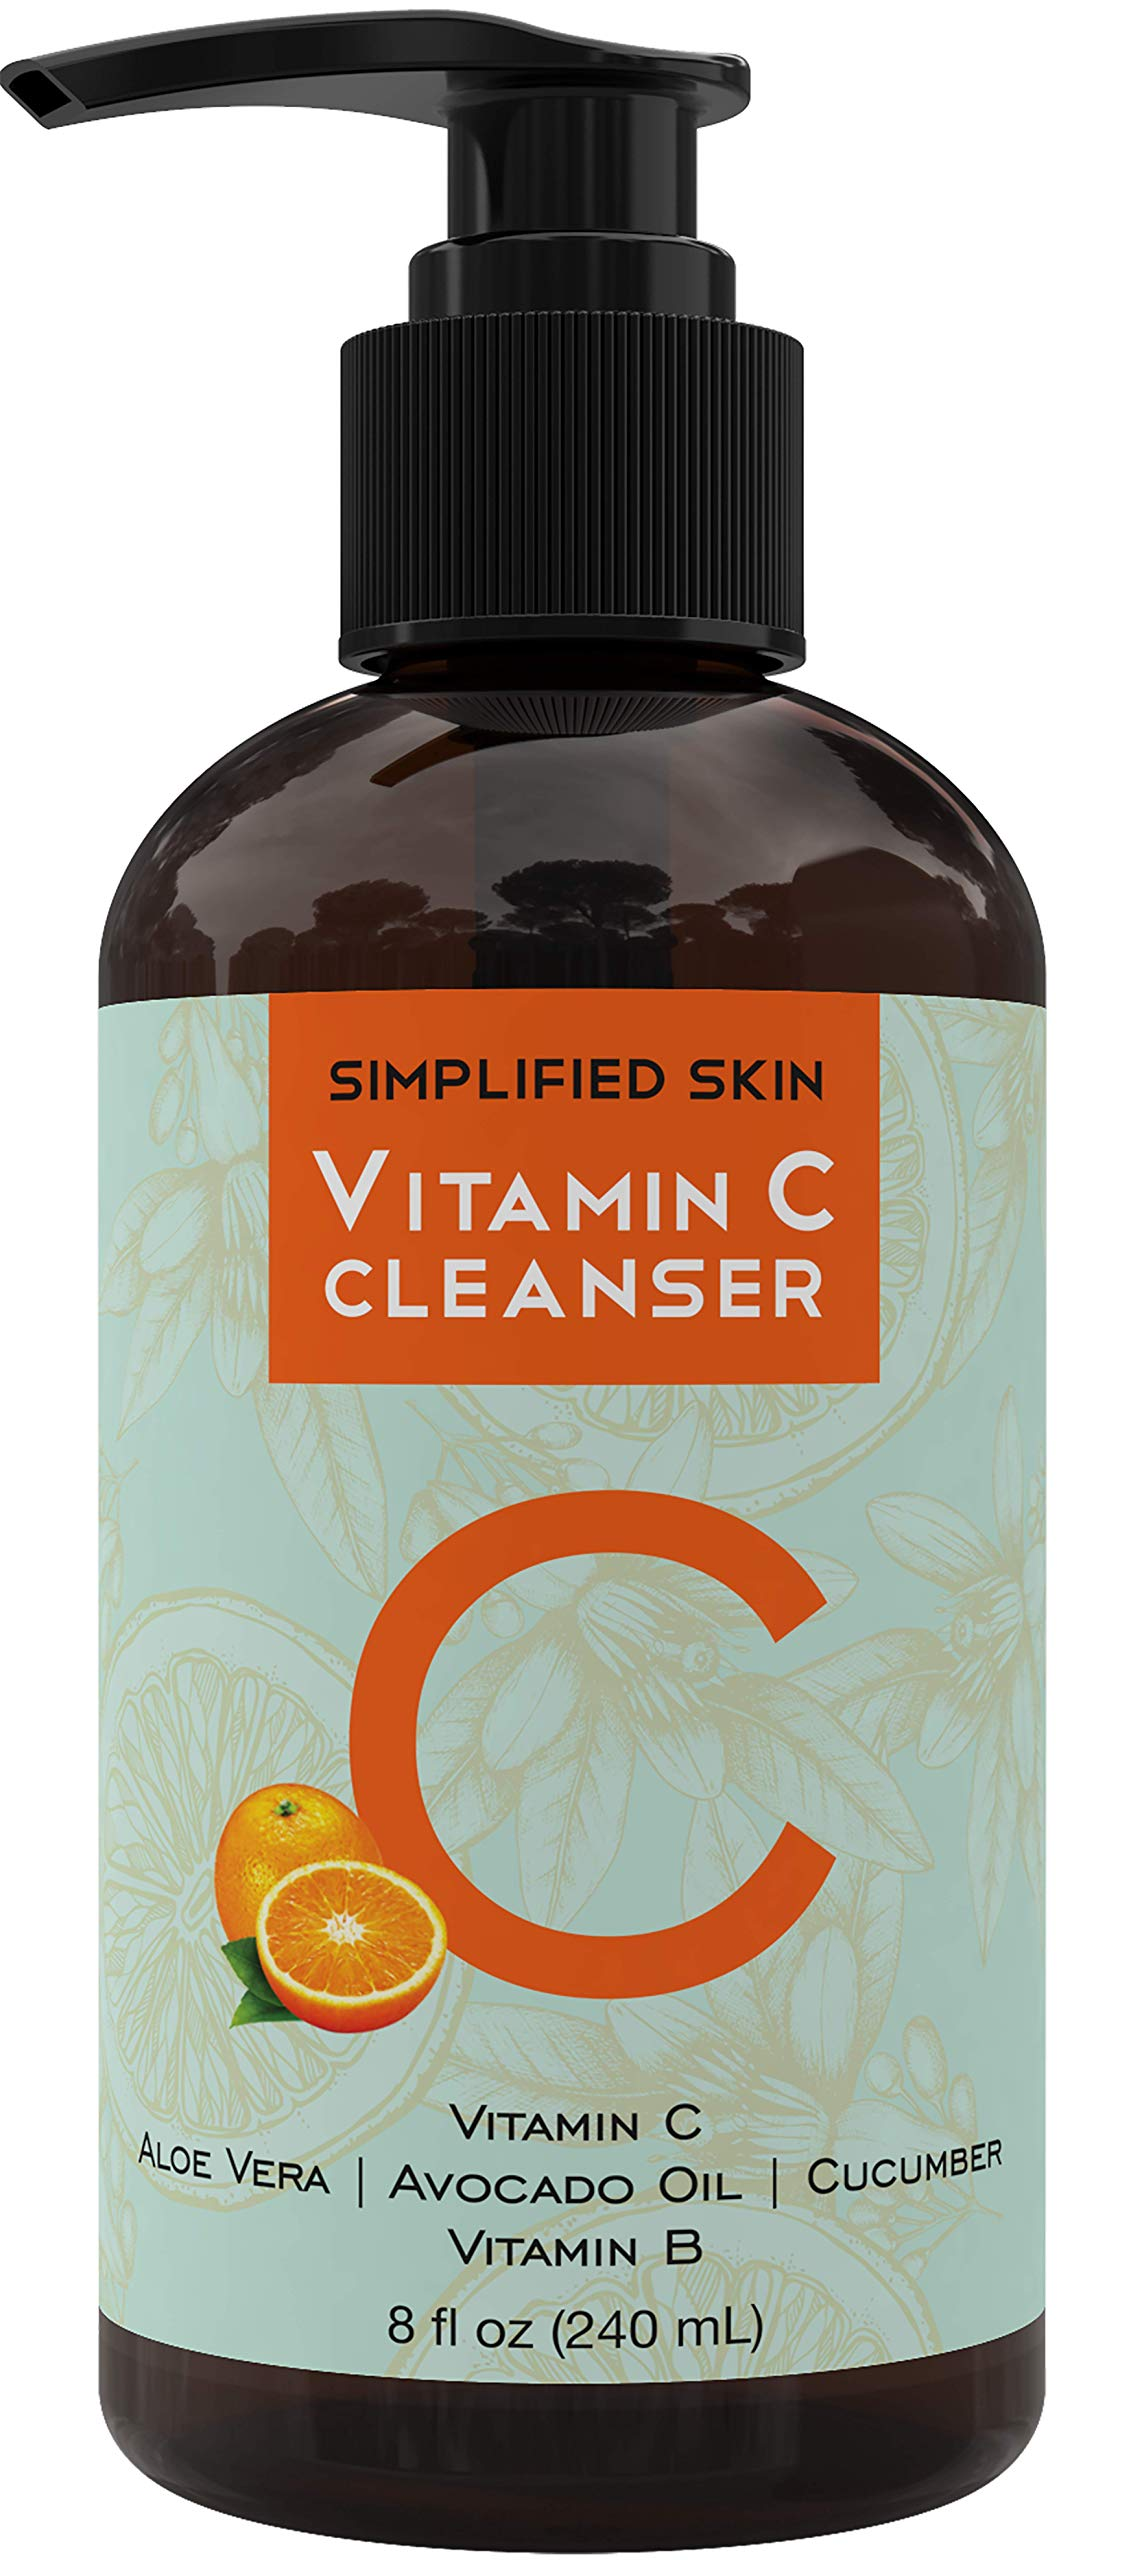 Vitamin C Facial Cleanser (8 oz) Gel for Daily Anti-Aging & Acne Treatment. Clear Pores on Oily, Dry & Sensitive Skin. Best Natural Makeup Removing Face Wash by Simplified Skin by Simplified Skin